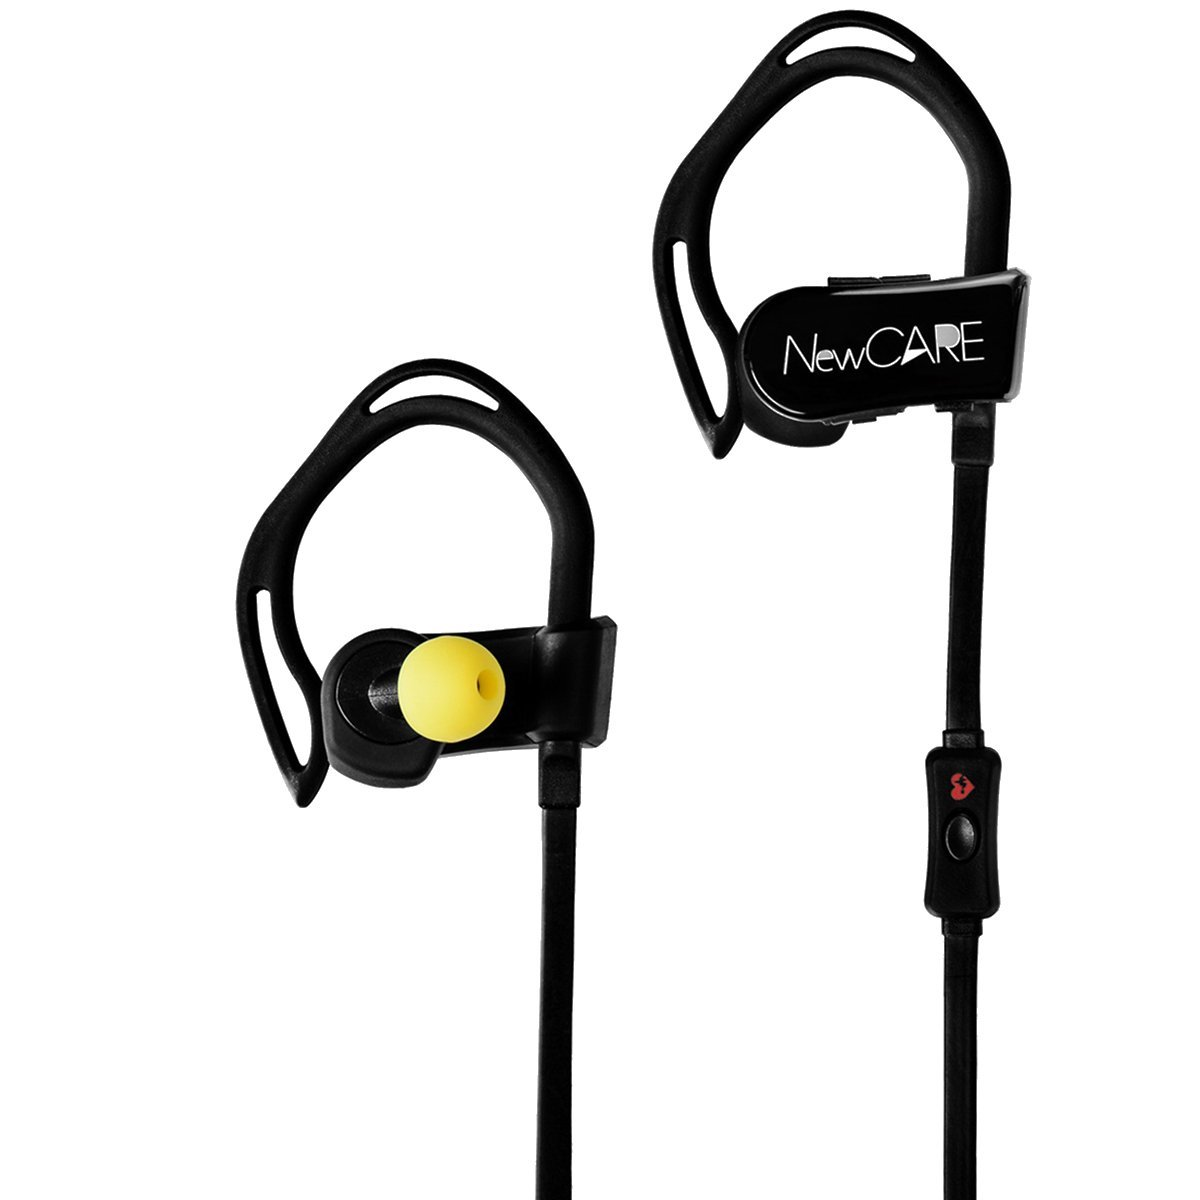 Newcare Bluetooth 4.0 Noise Cancelling Sport Headphones Wireless Earphones with Heart Rate Monitor Sweatproof Earbuds for Running Exercise Waterproof